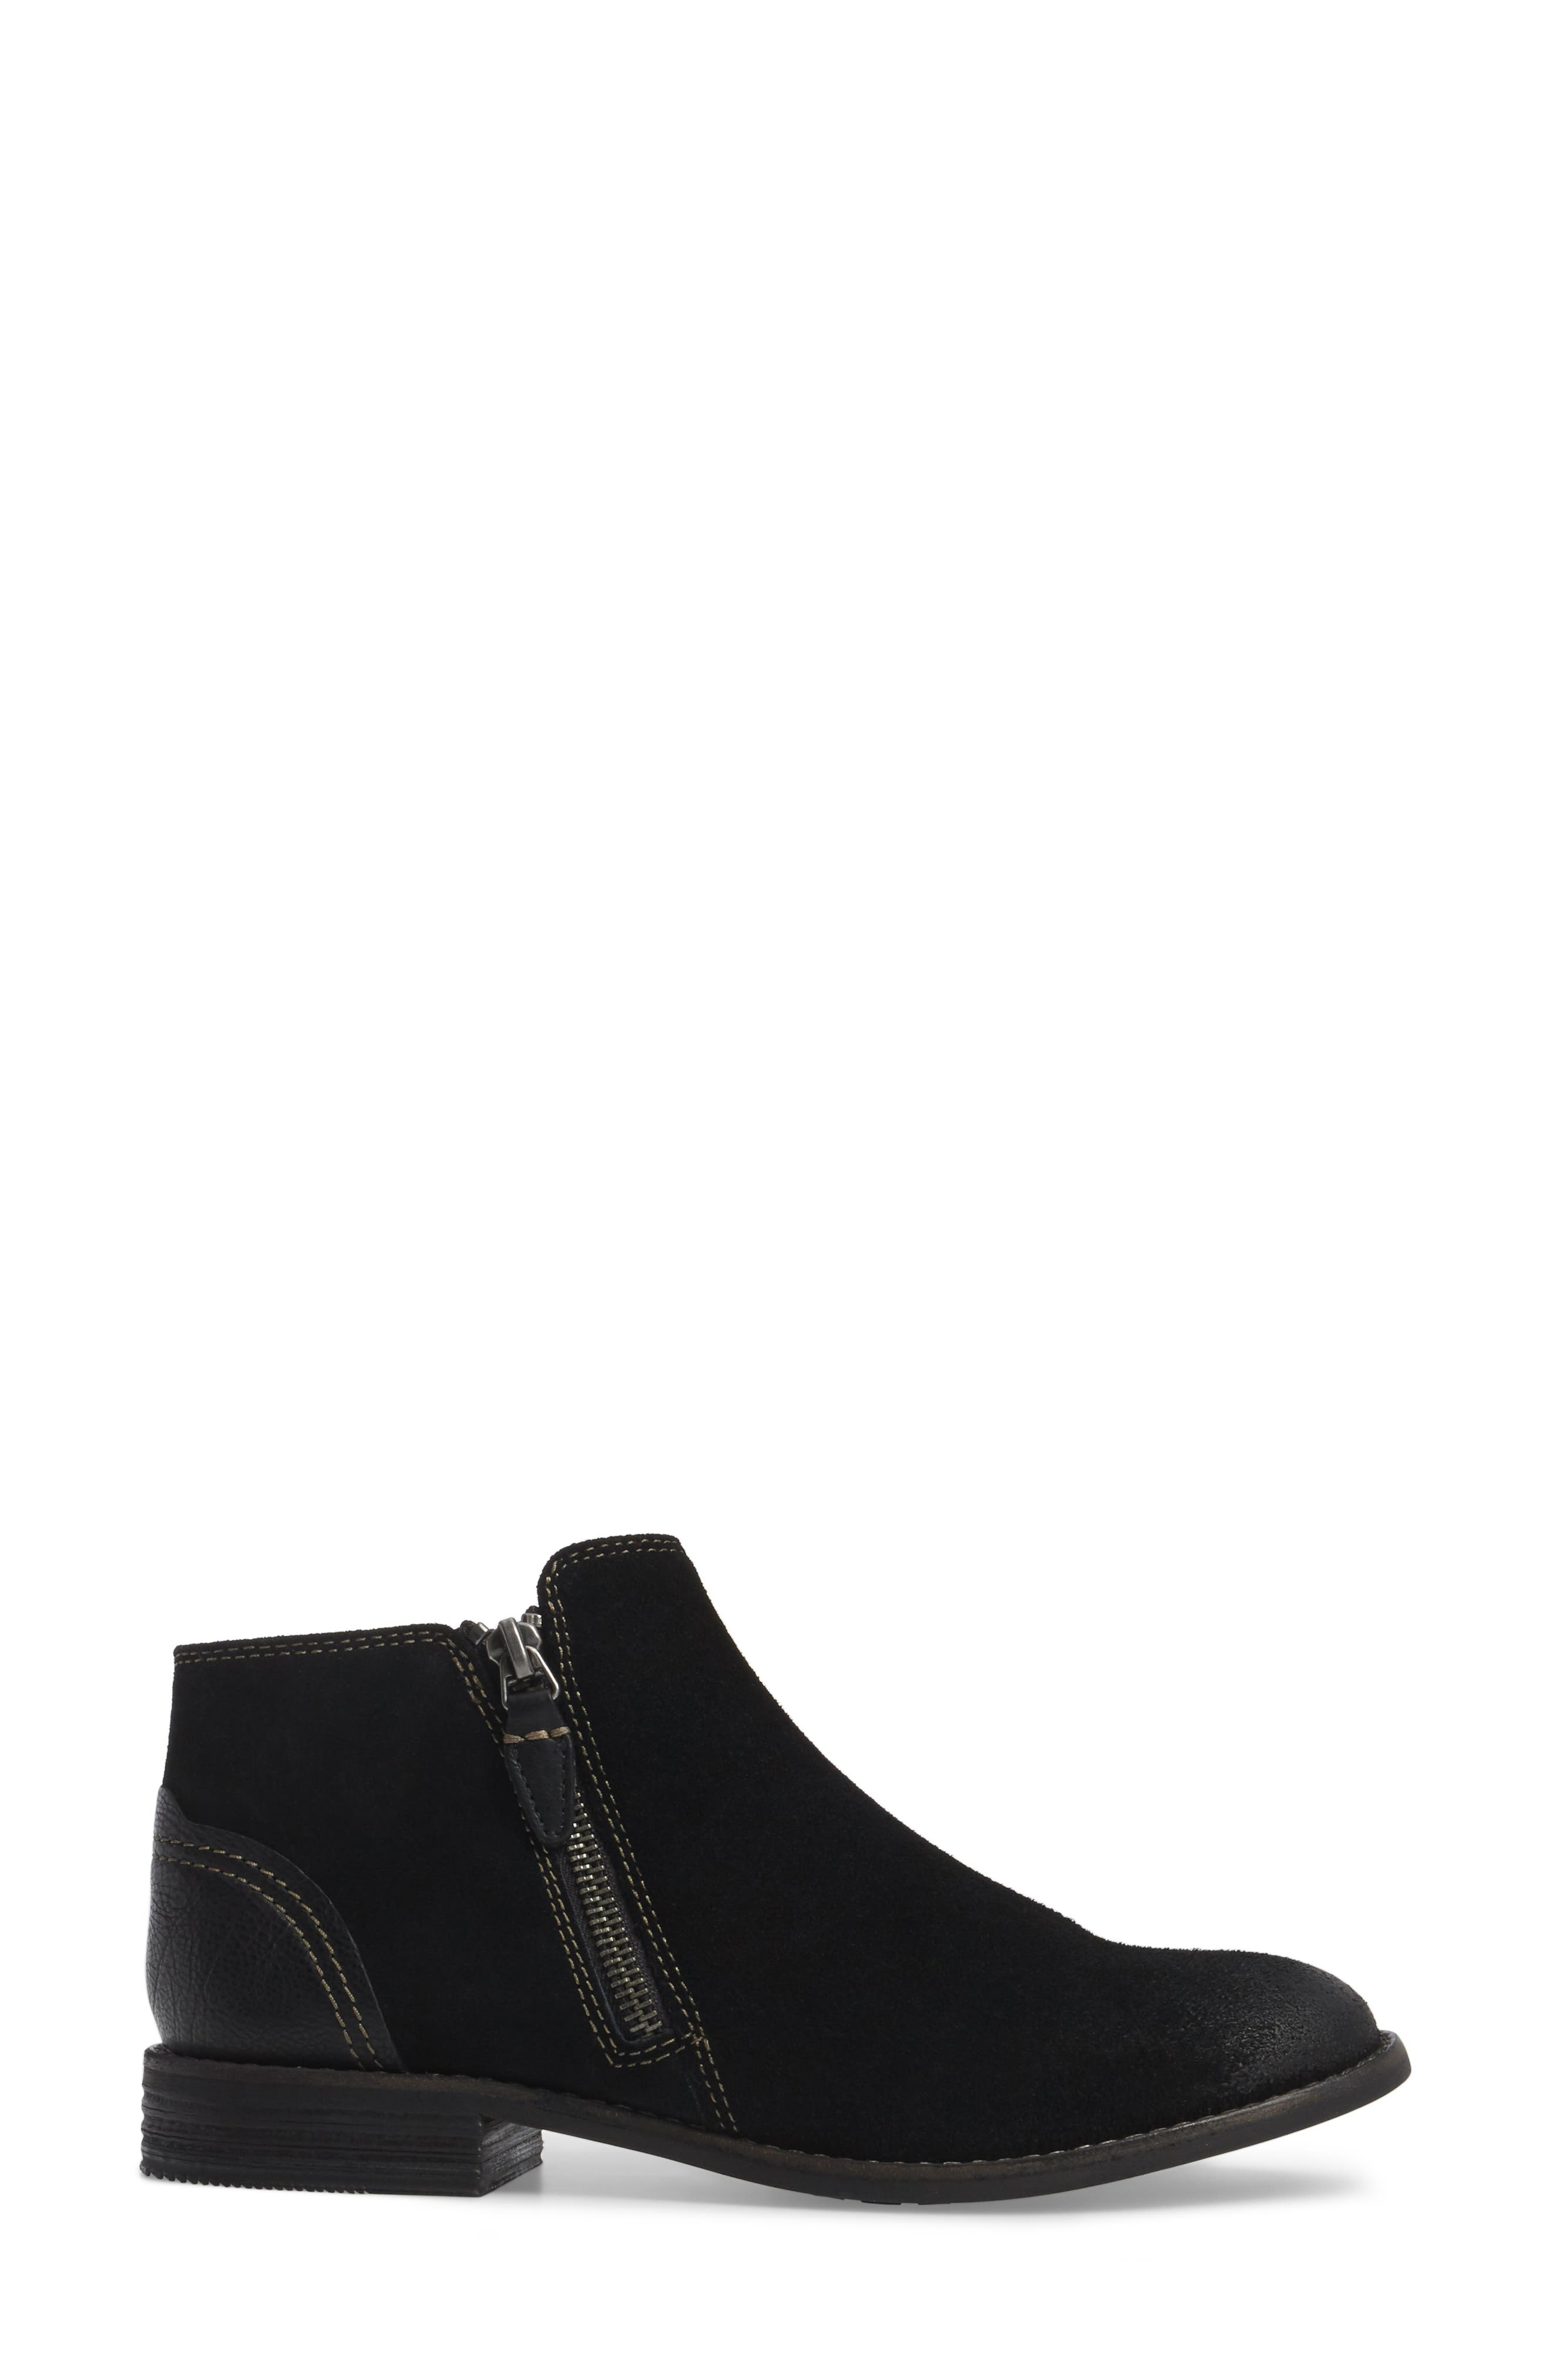 Maypearl Juno Ankle Boot,                             Alternate thumbnail 3, color,                             BLACK SUEDE